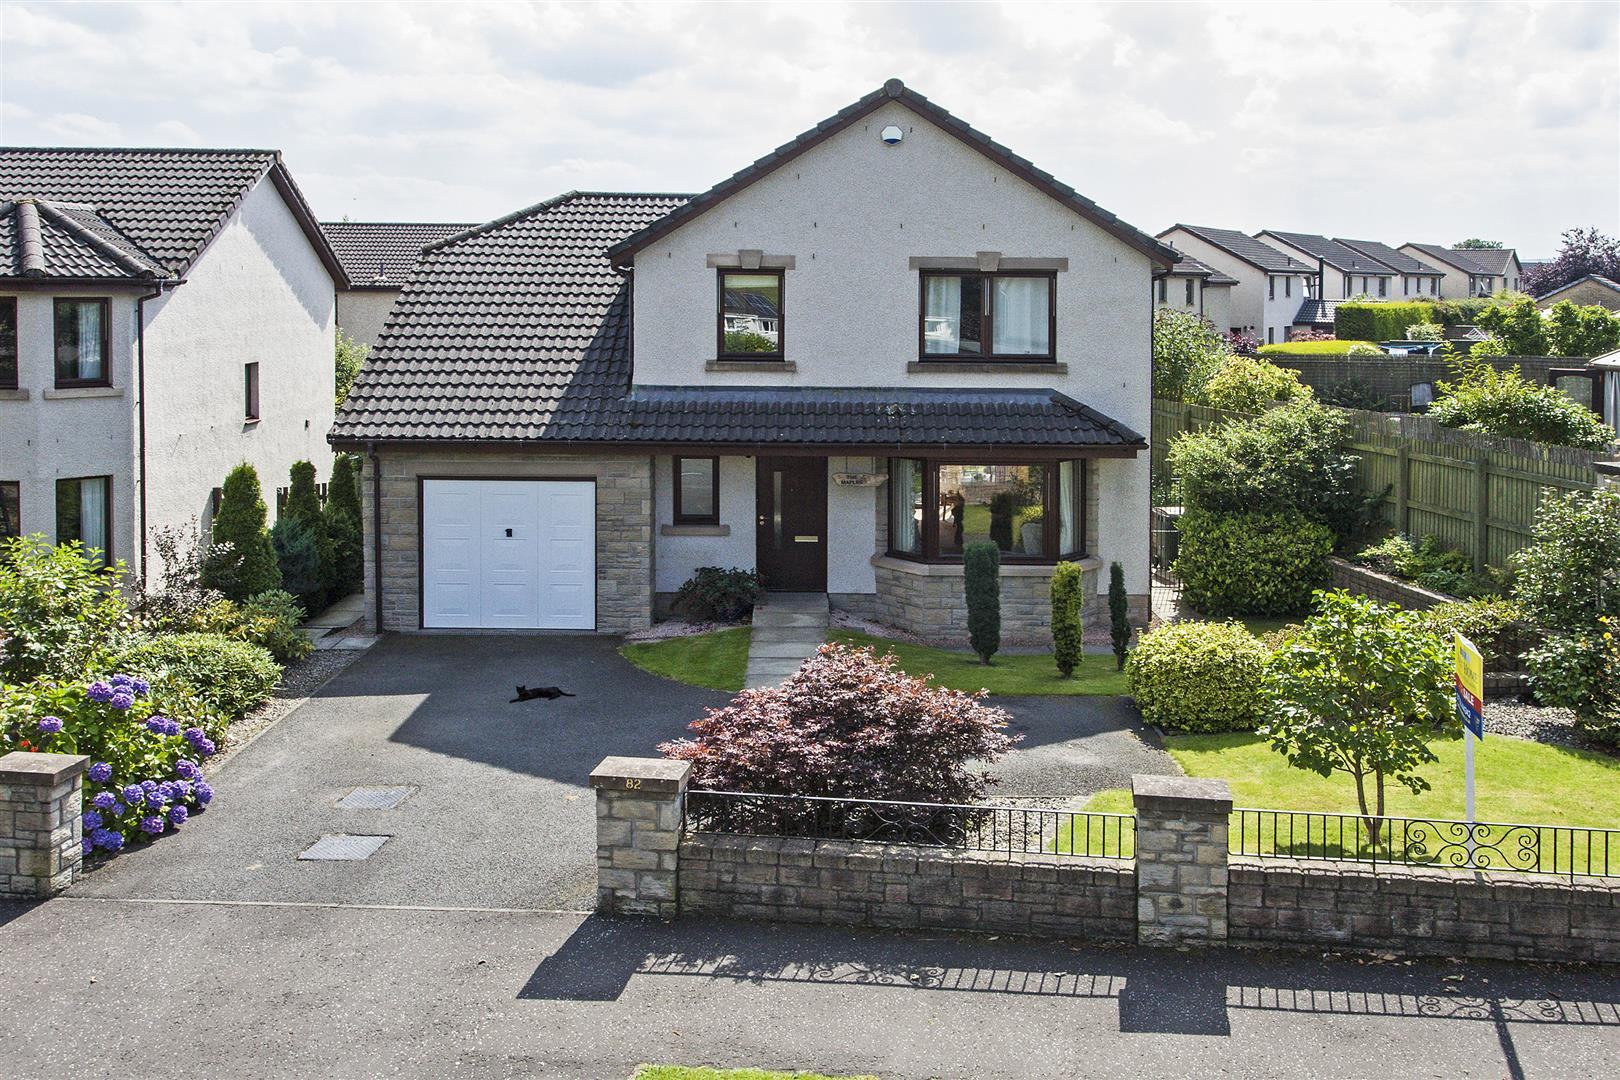 82, Dollerie Terrace, Crieff, Perthshire, PH7 3EG, UK